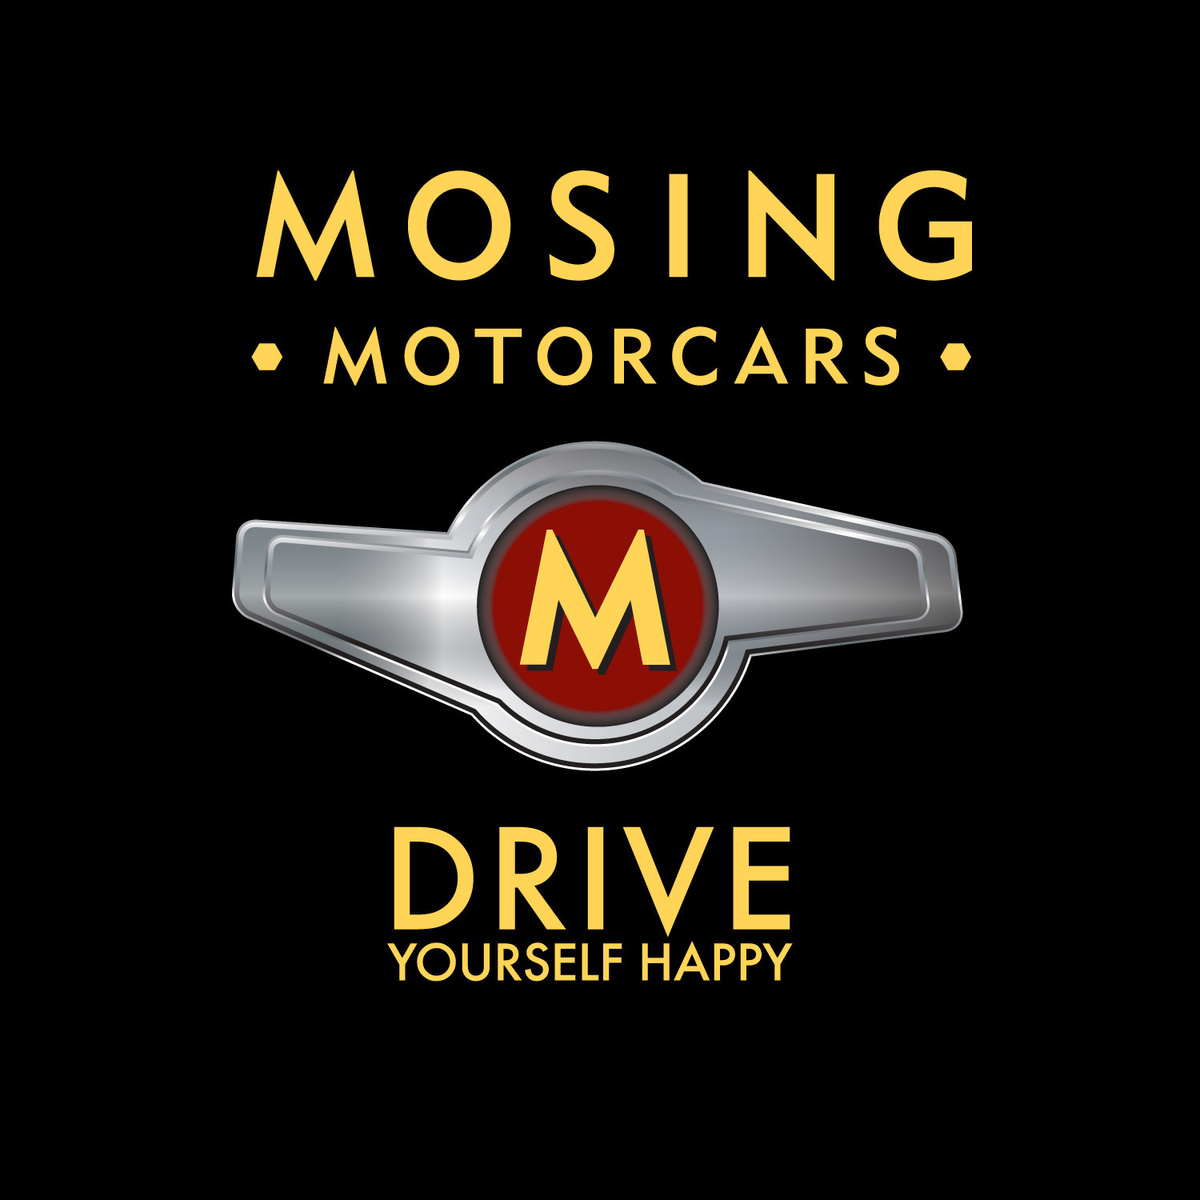 Mosing Motorcars - Austin, TX: Read Consumer reviews, Browse Used and New Cars for Sale